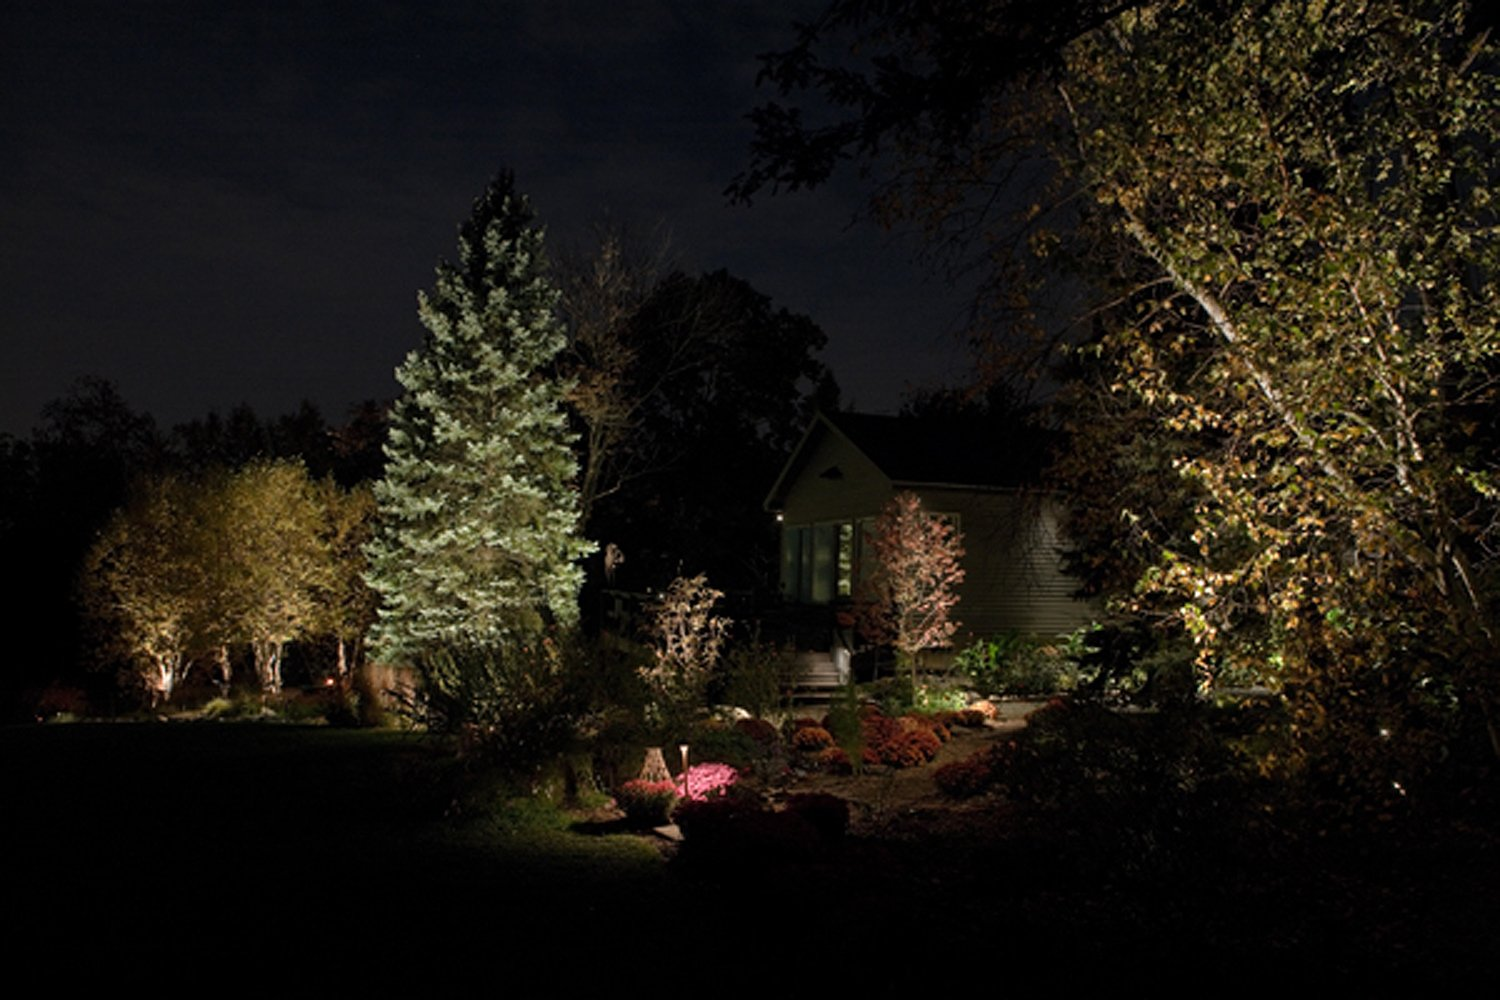 Outdoor Landscape Lighting Professional : Professional outdoor lighting design innovative nightscapes